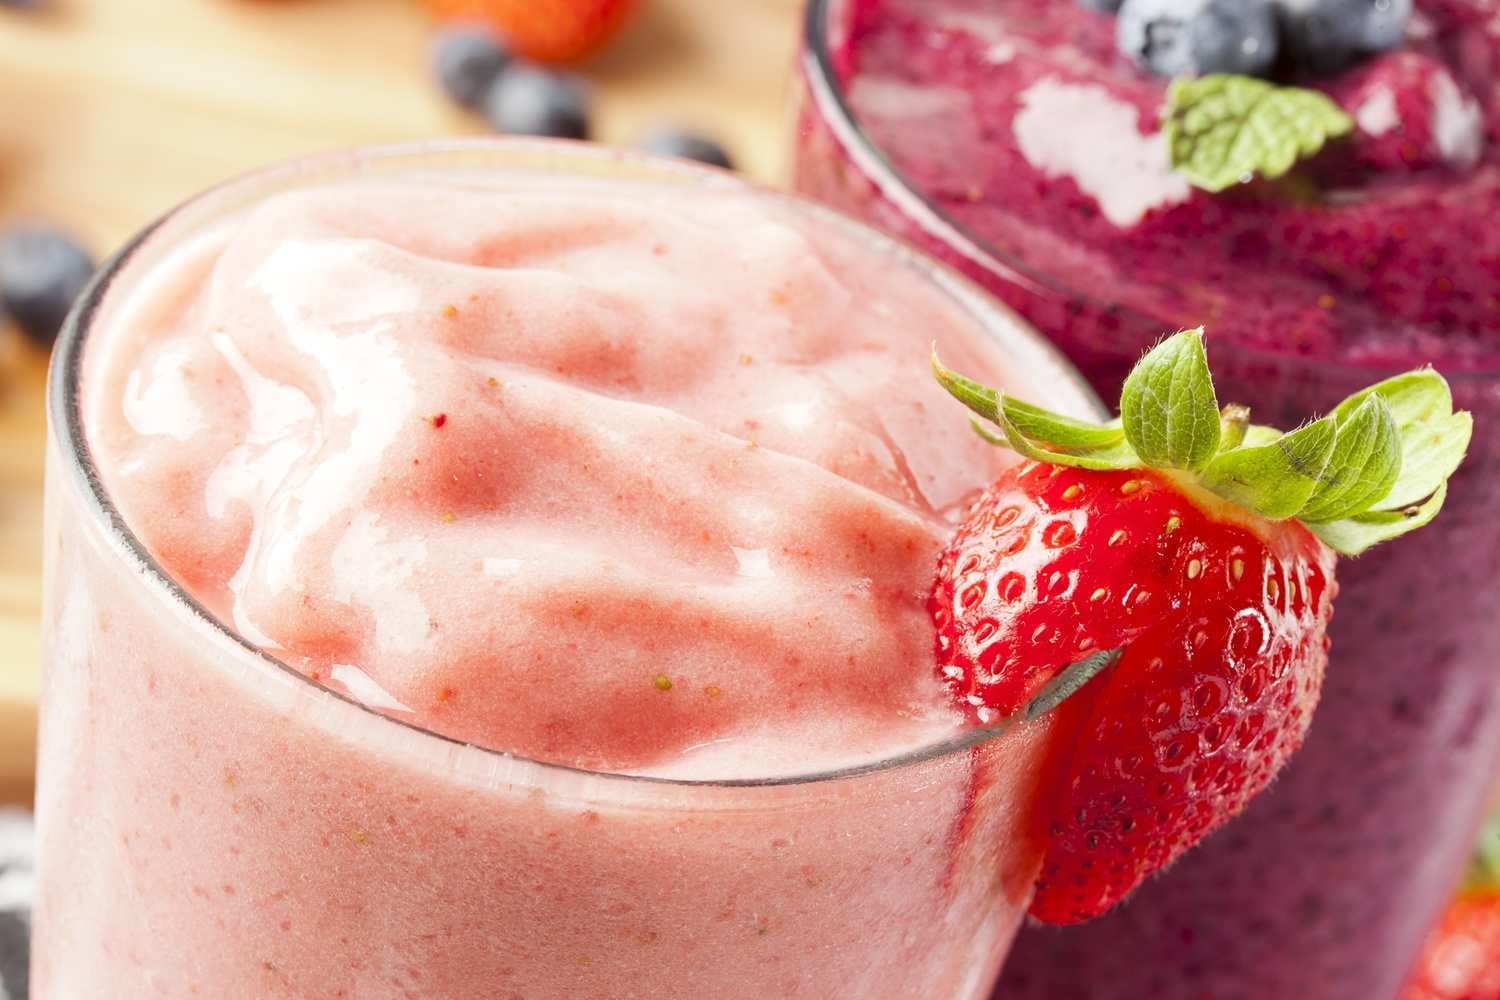 Juices and smoothies are a delicious way to supplement your cleanse. Just remember to maintain a sufficient calorie count of fresh fruits and vegetables. The starvation method will backfire on you, every time.